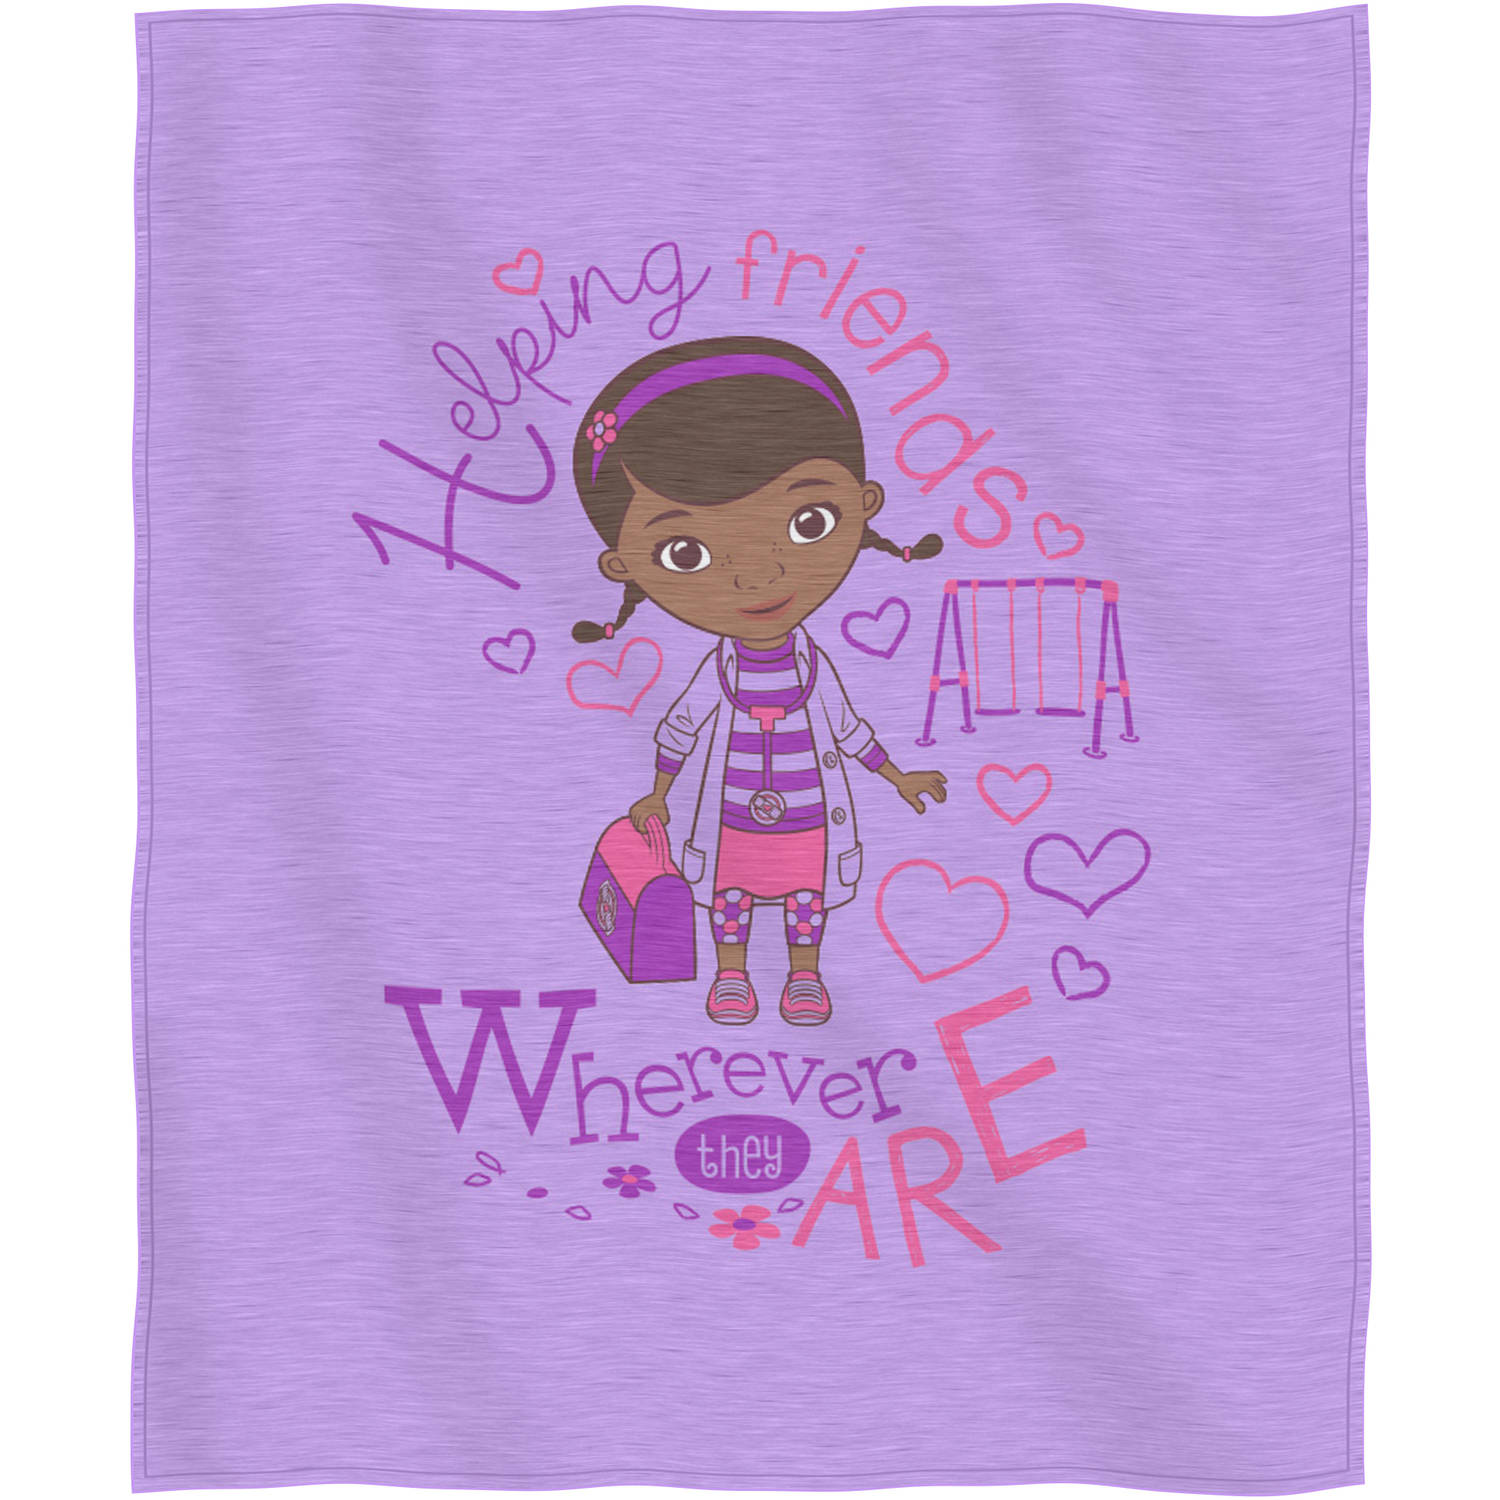 "Disney Doc McStuffins ""Doc Love"" Sweatshirt Throw, 50"" x 60"""